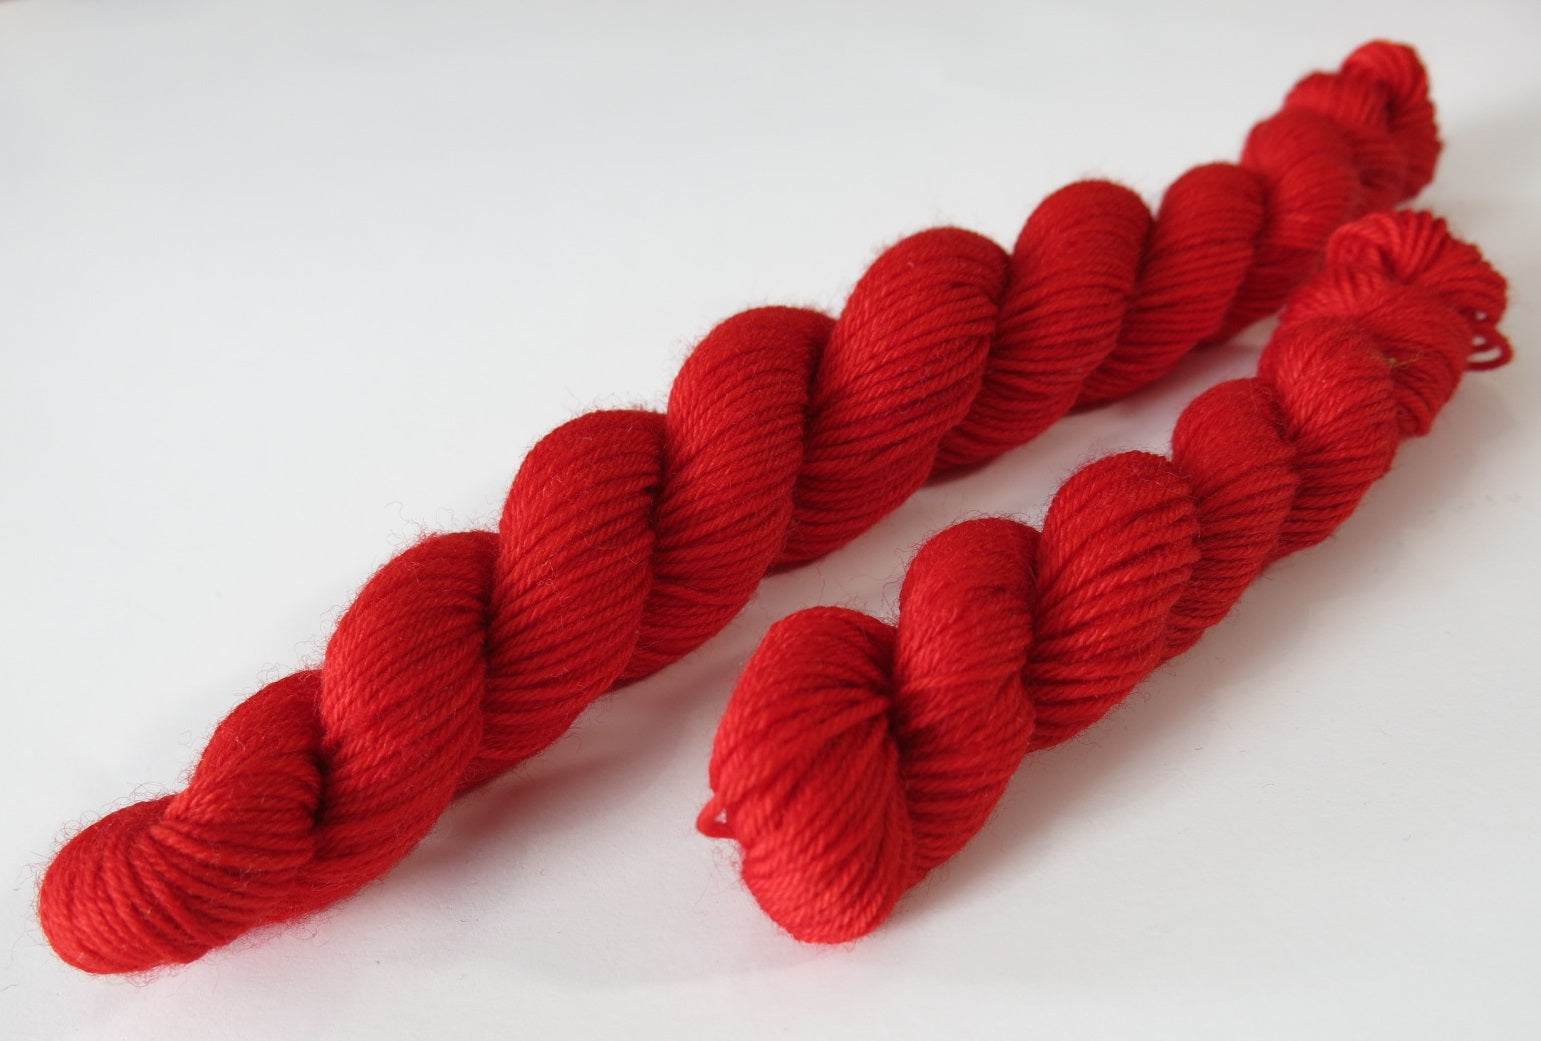 bright solid fairytale red sock yarn mini skein for knitting and crochet